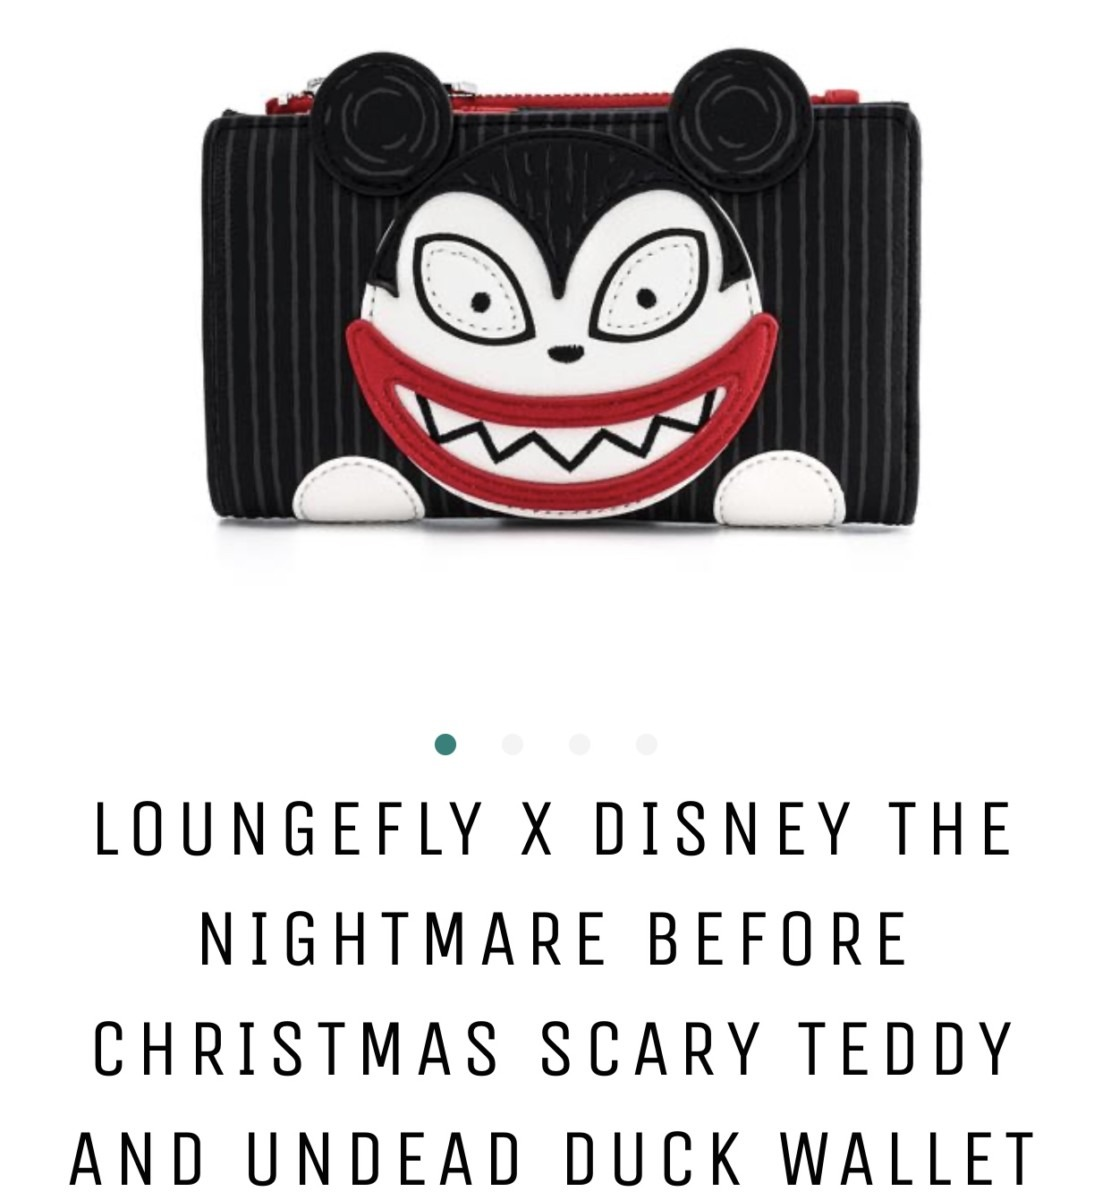 New Nightmare Before Christmas Bags from Loungefly 3